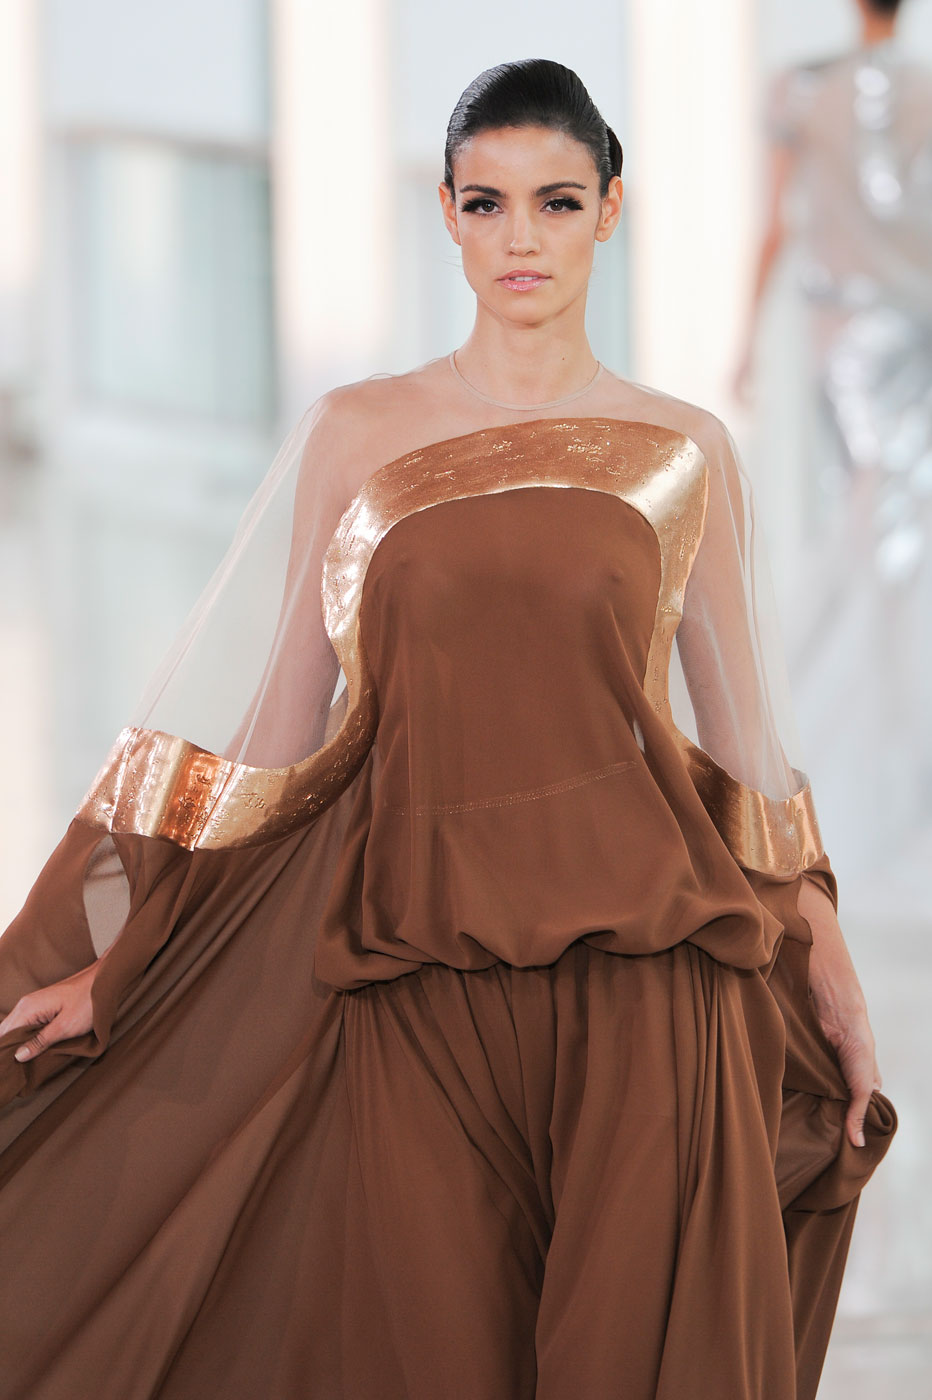 stephane-rolland-fashion-runway-show-haute-couture-paris-spring-2015-the-impression-54